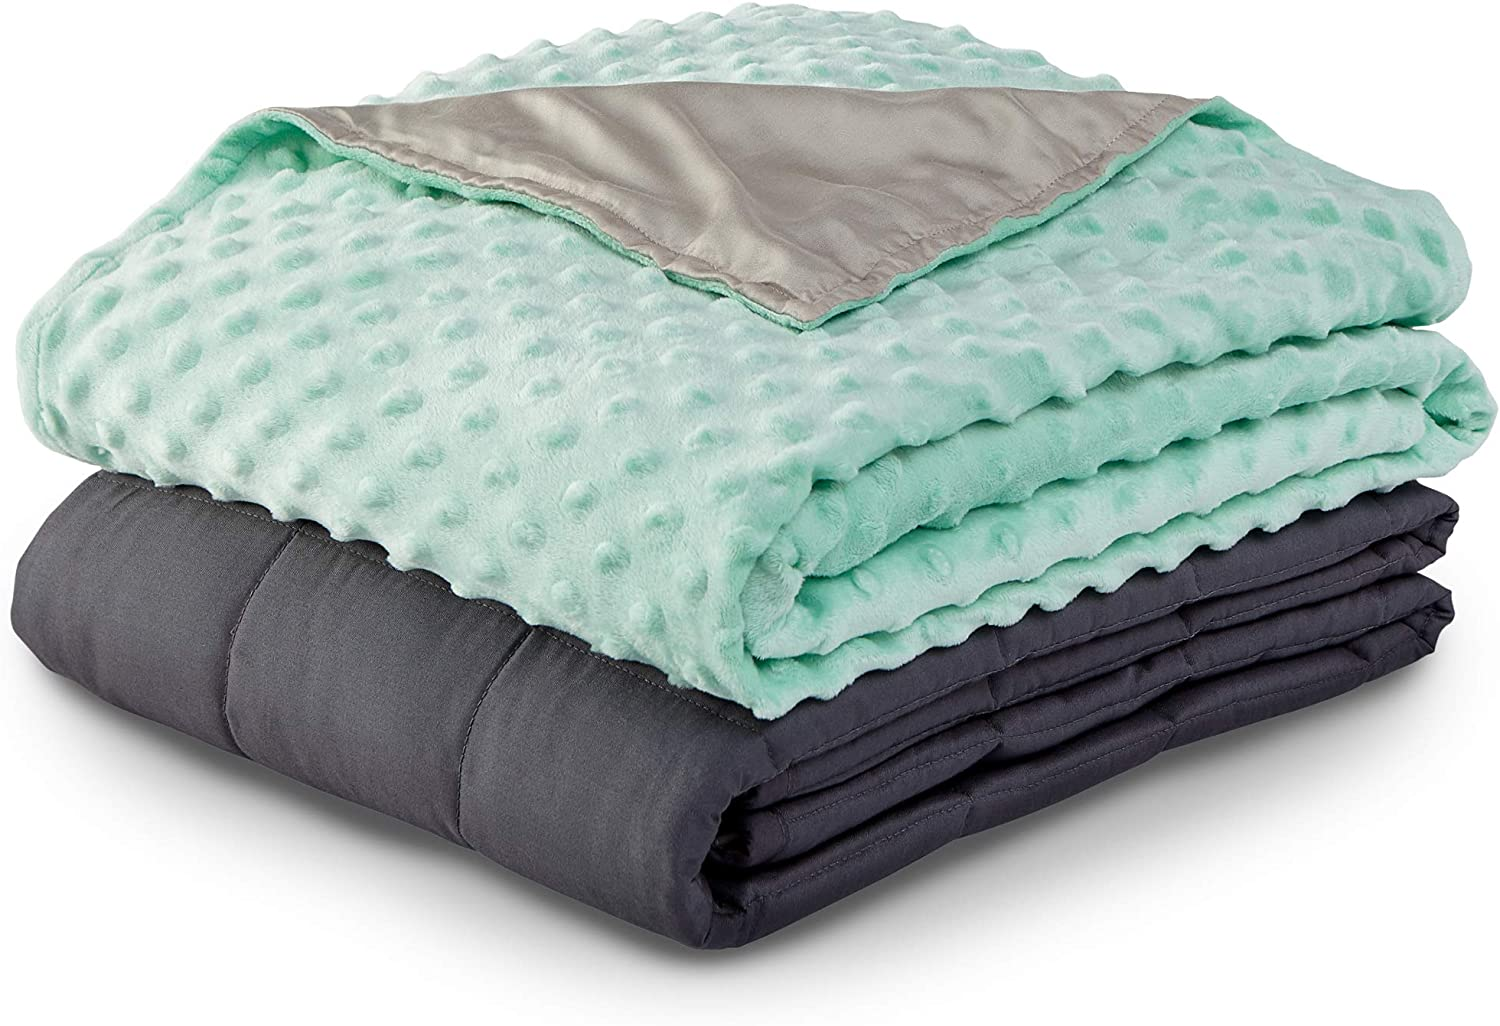 """PureCare Zensory Kids 7 lb. Weighted Blanket with Duvet, Hypoallergenic Glass Beads & Soft Minky Fleece Duvet, 41"""" X 60"""", Gray and Teal (PCZWB7)"""